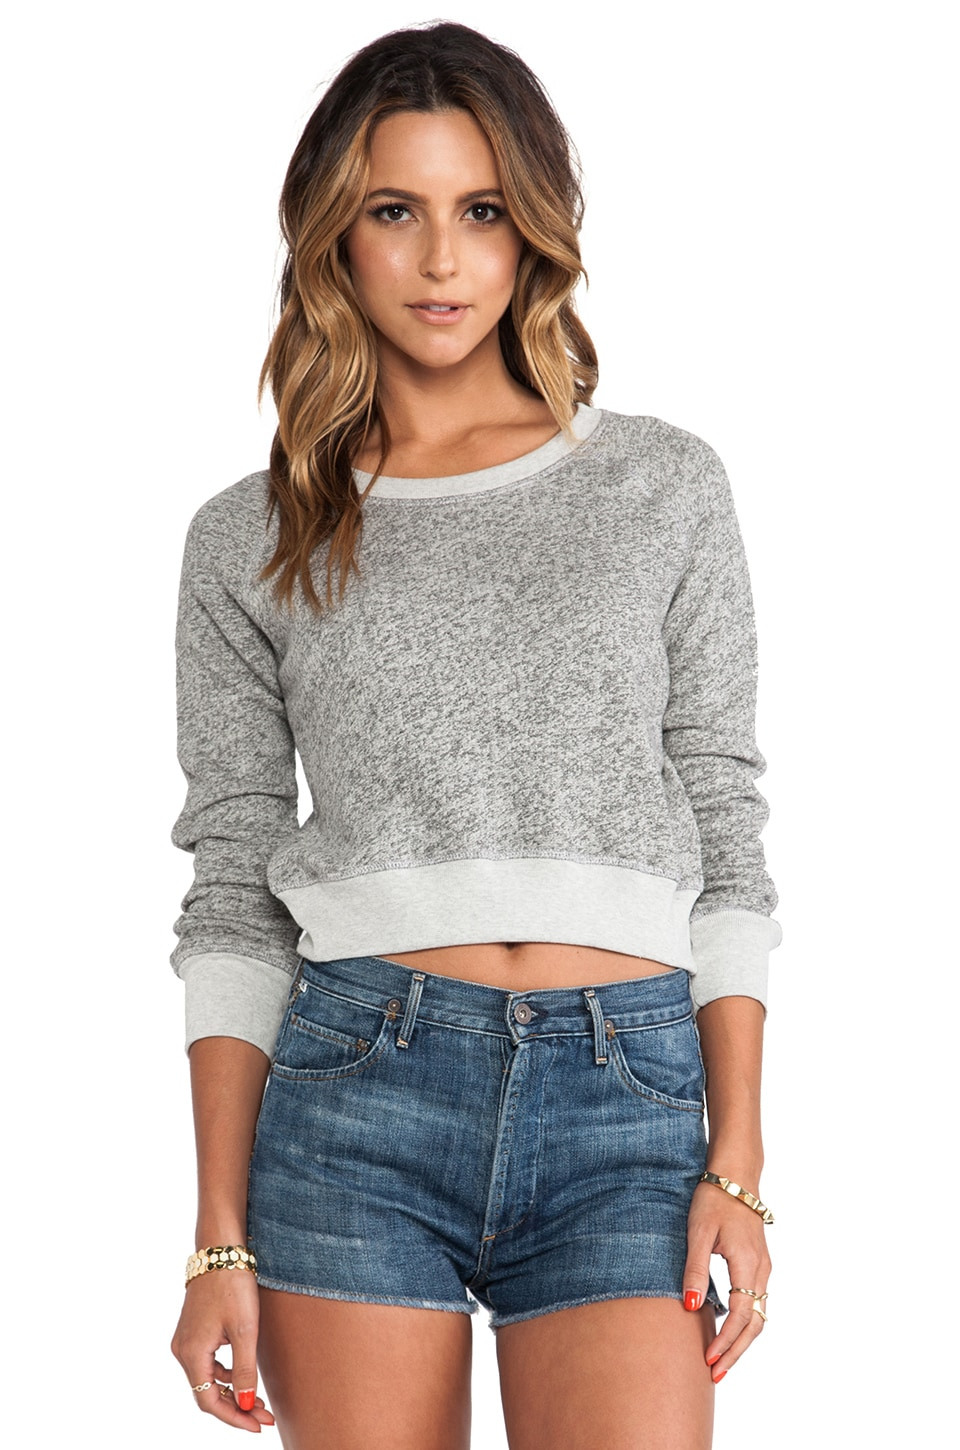 19 4t Crop Sweater in Charcoal